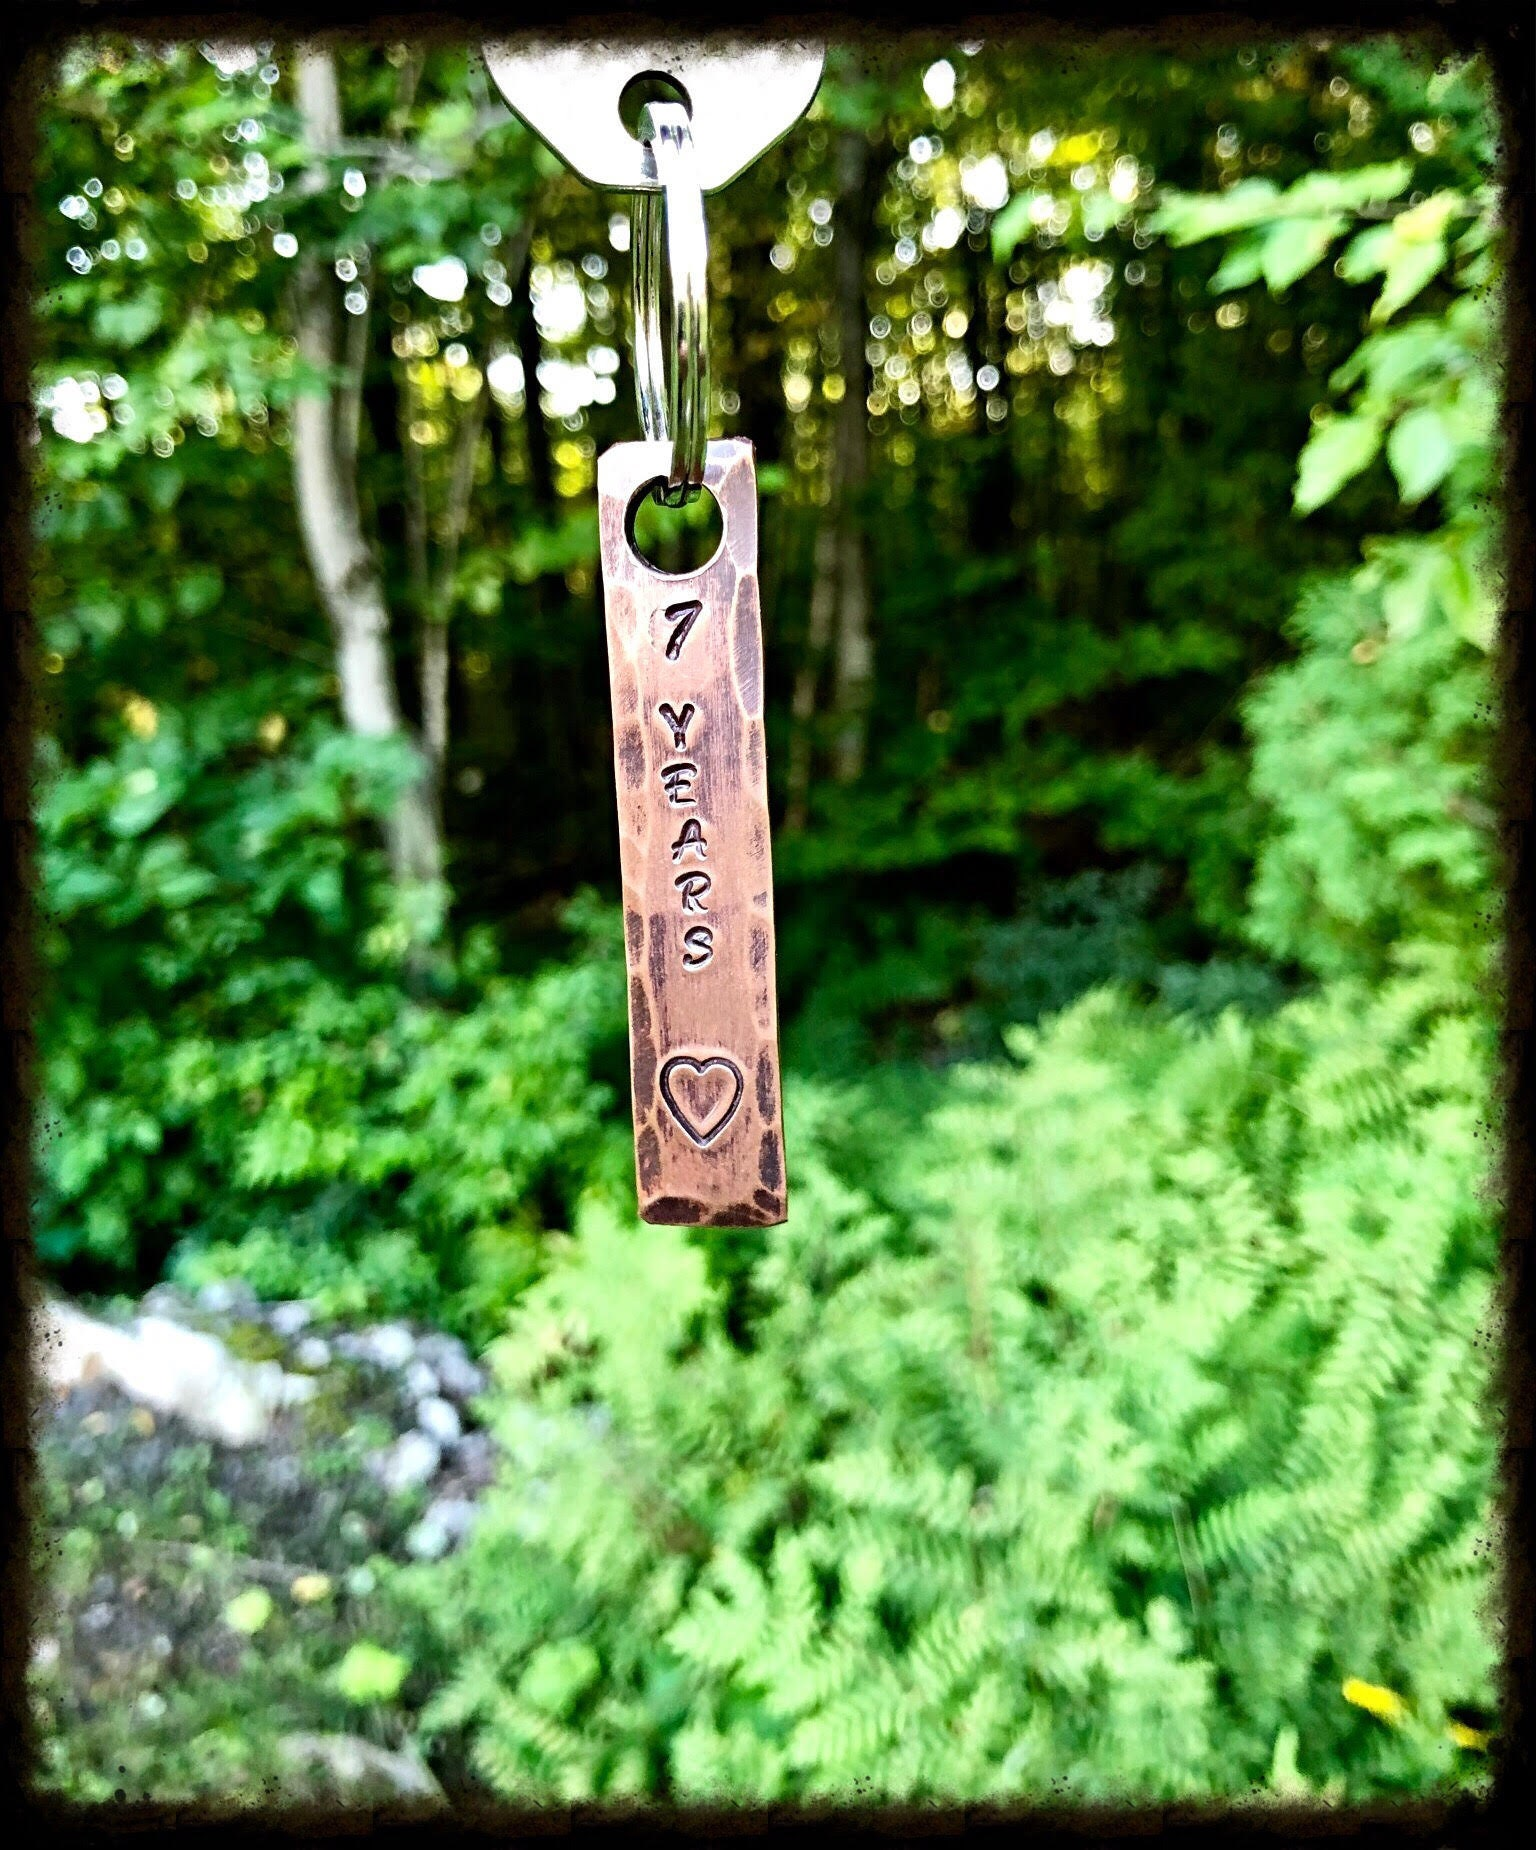 7th Wedding Anniversary Gift Ideas For Her: 7th Year Copper Wedding Anniversary Keychain Gift Idea For